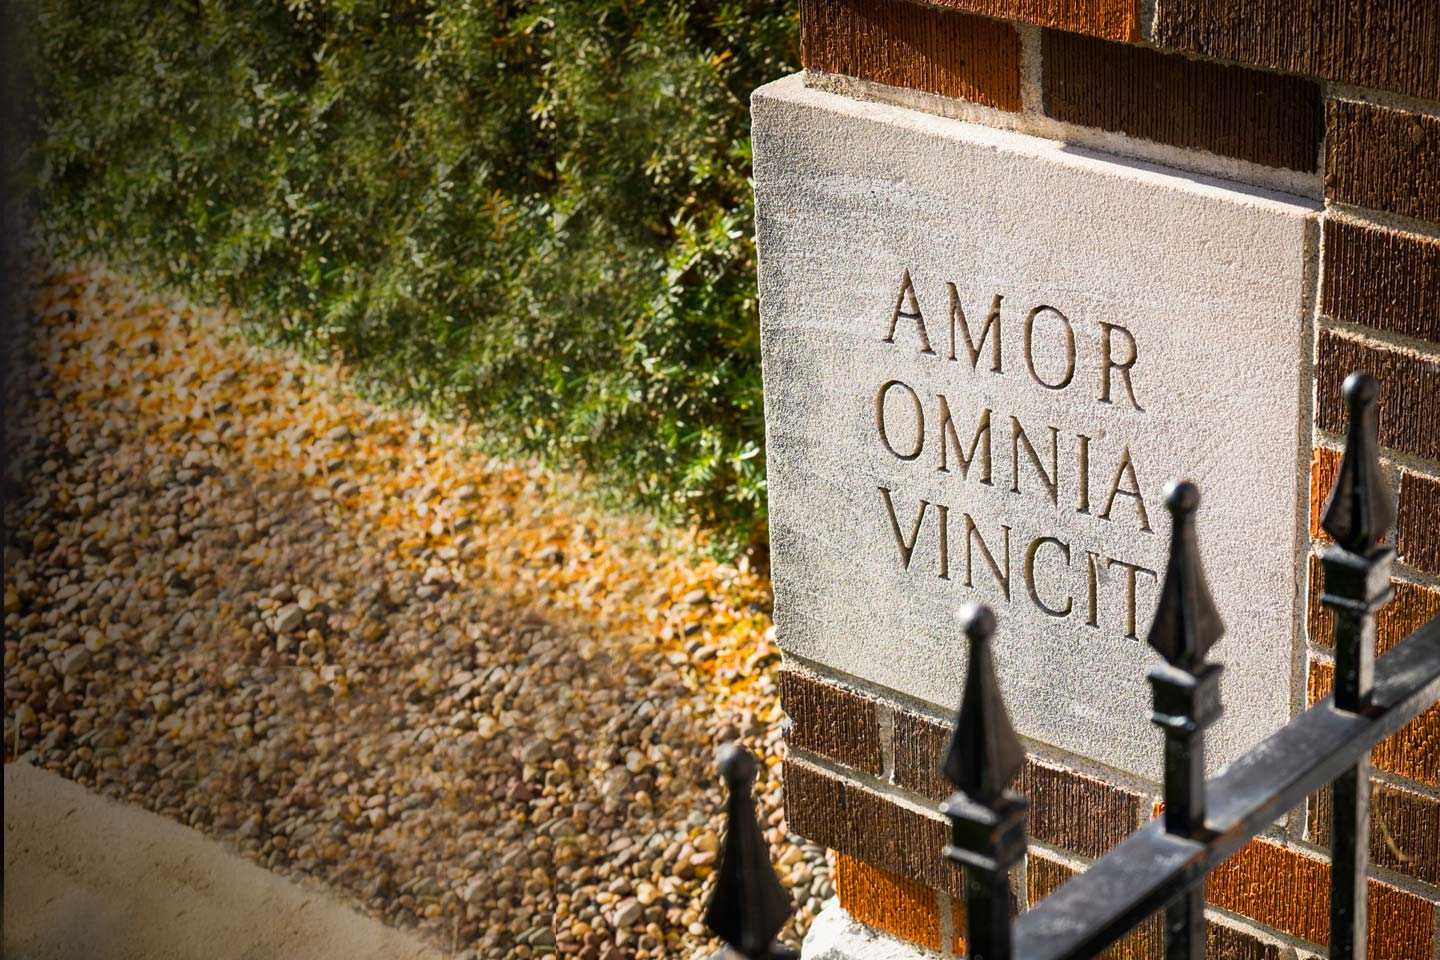 Shows cornerstone reading Amor Omnia Vincit - or Love Conquers All.